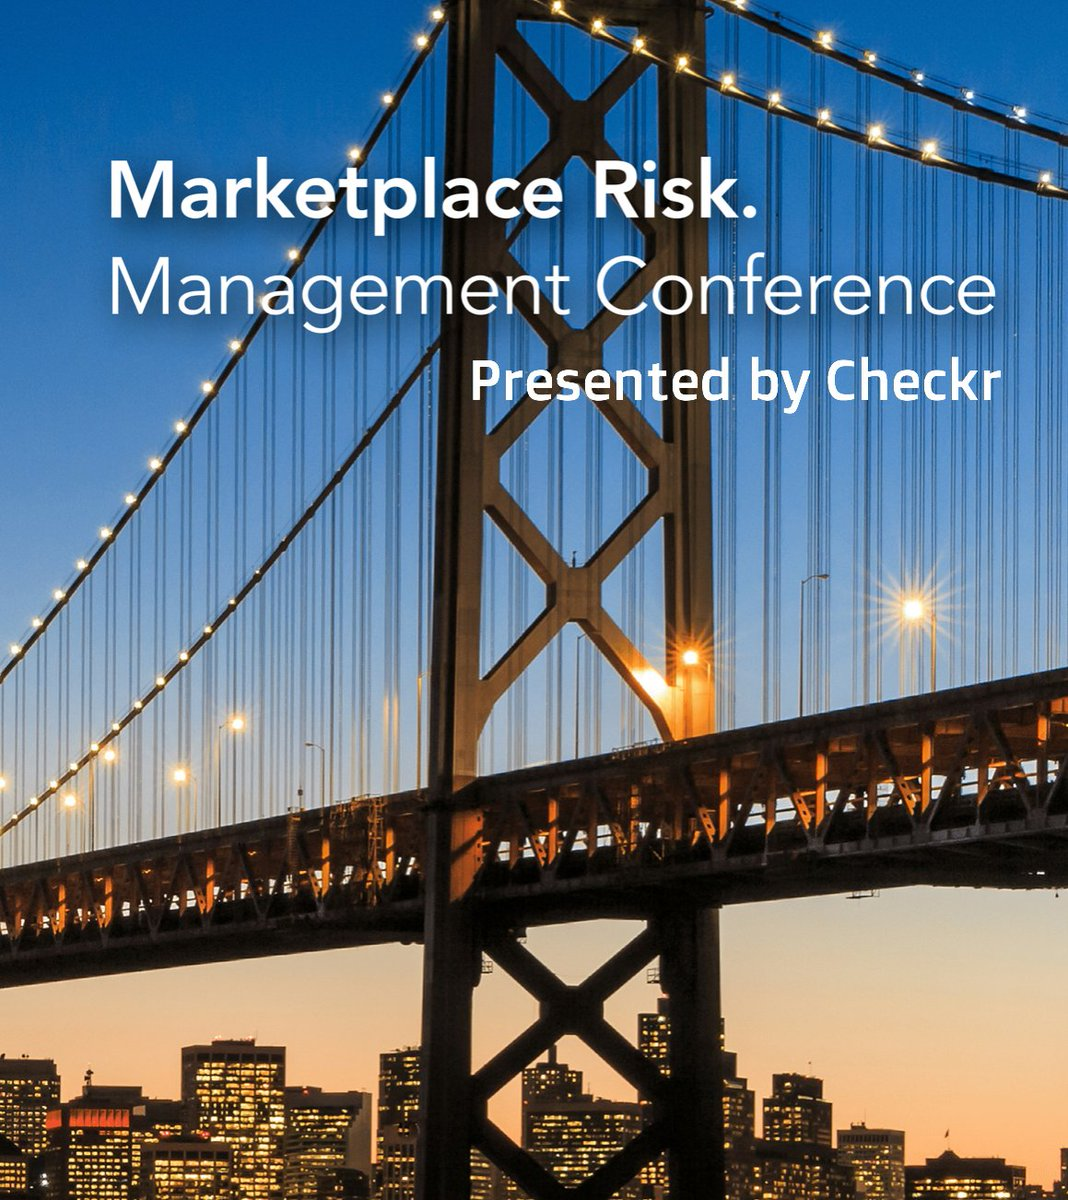 Marketplace Risk  on Twitter: